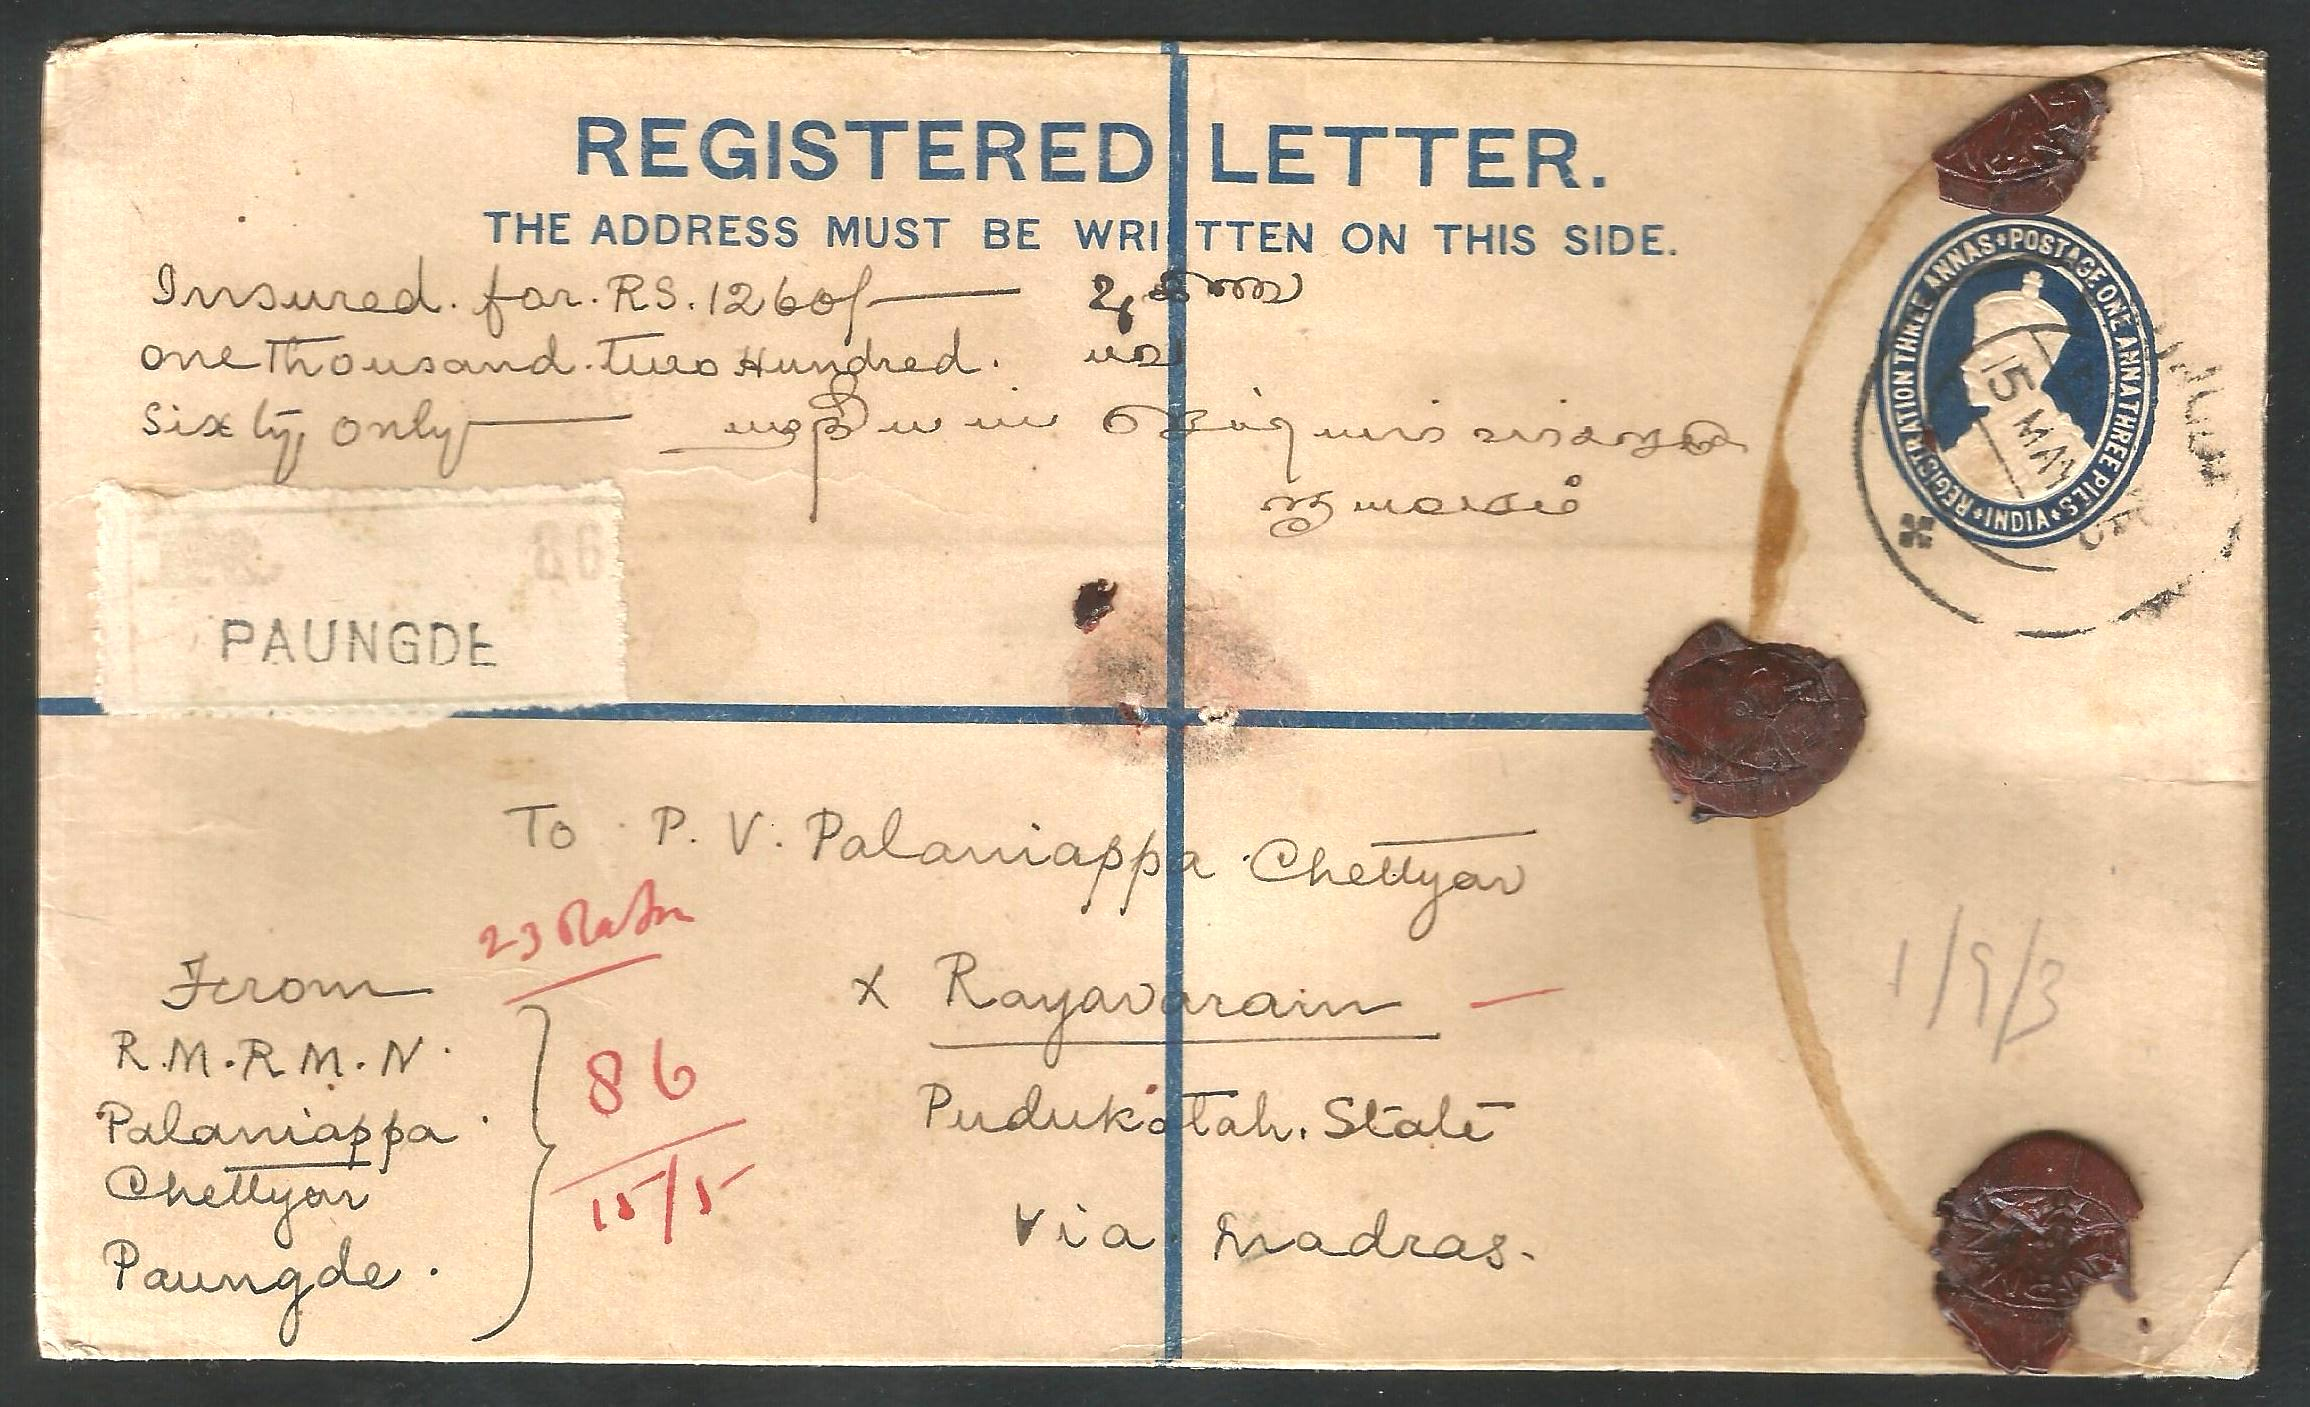 India REGISTERED LETTER Envelope used in BURMA with KGV stamps @033